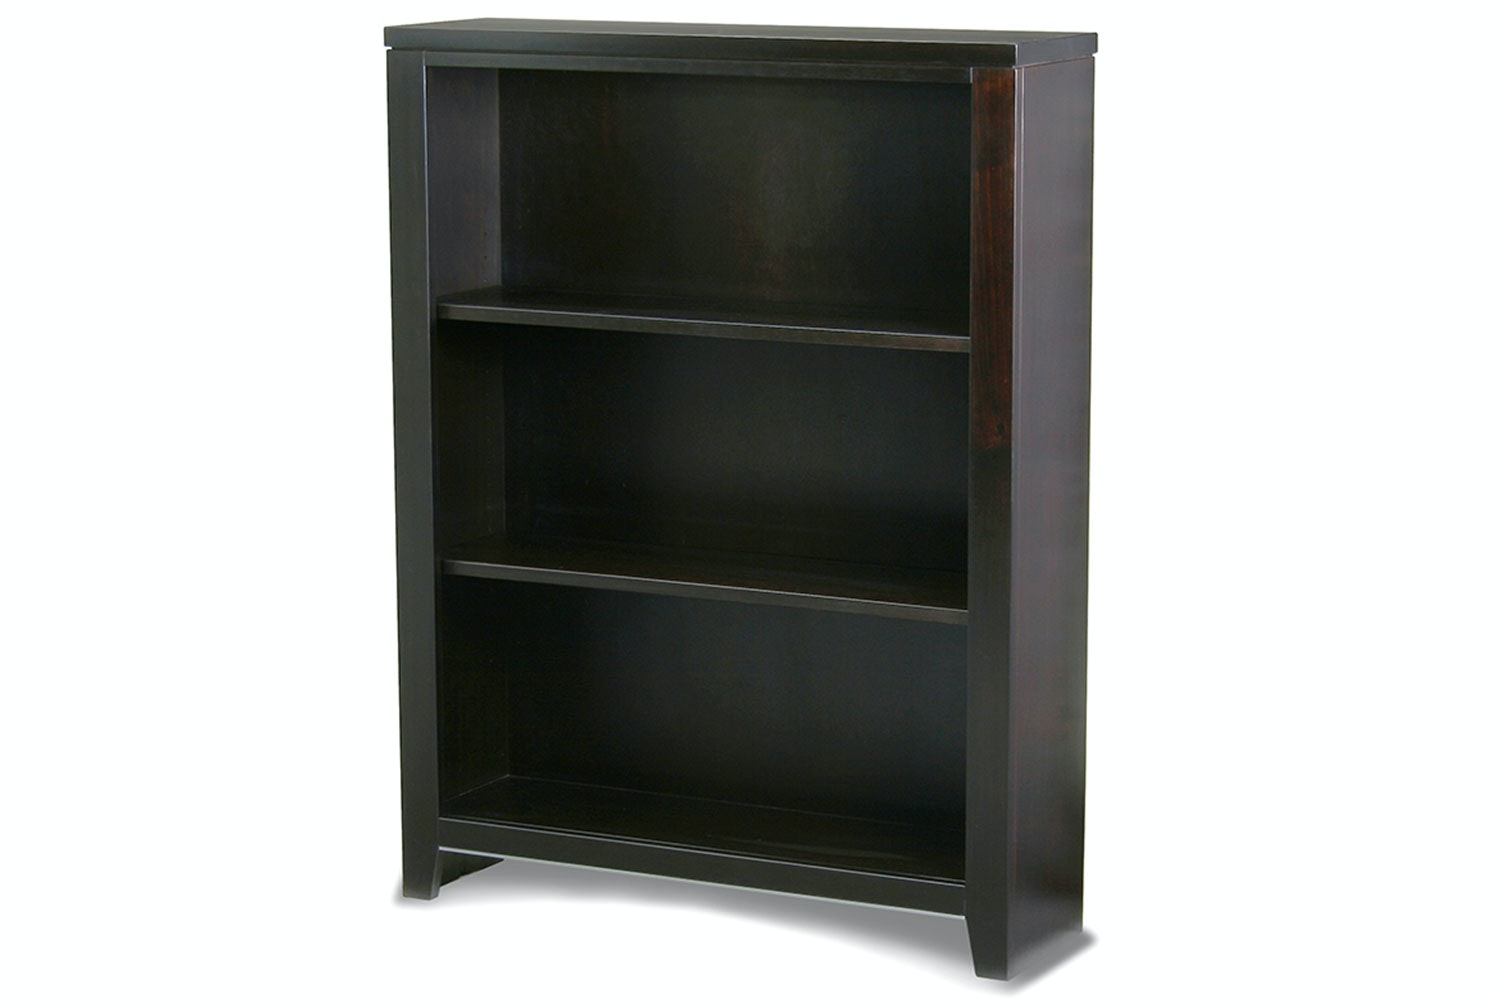 Metro Bookcase 900x1200 by Coastwood Furniture